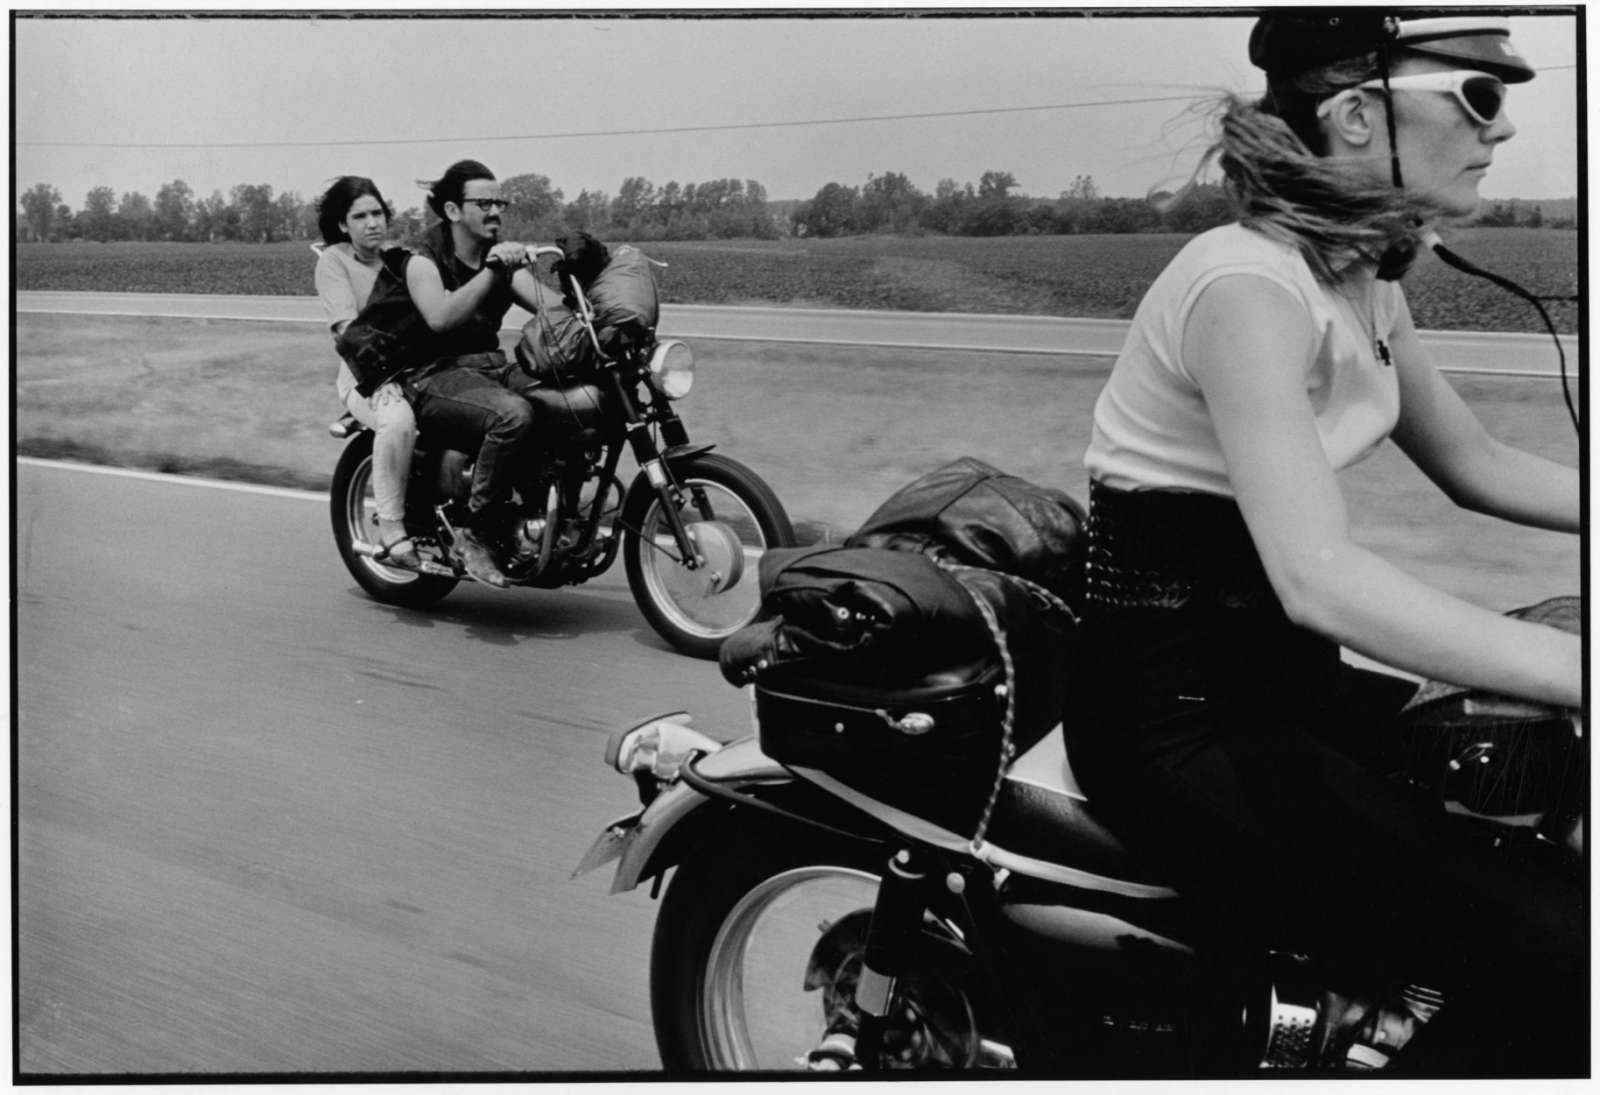 From Dayton to Colombus, Ohio, The Bikeriders Portfolio, 1966